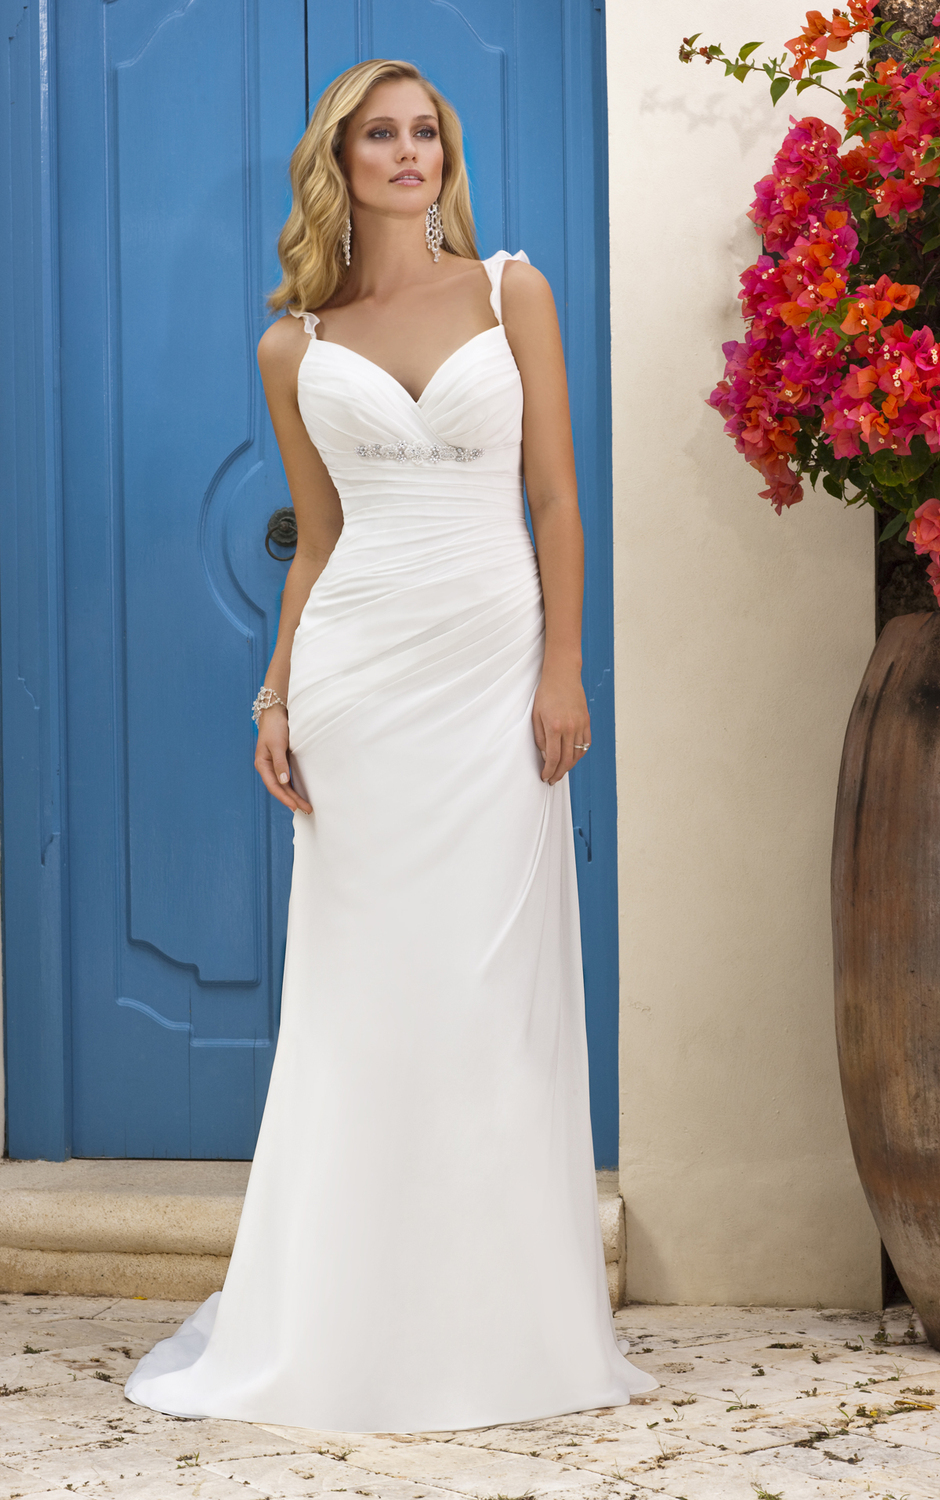 Amazing Vestidos De Novia Boda Civil Mold - All Wedding Dresses ...